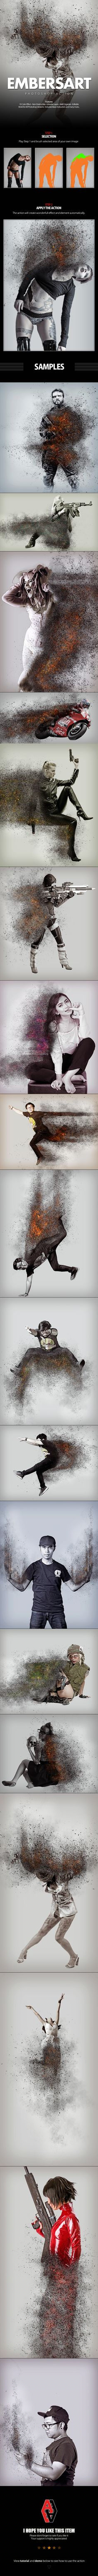 Embersart Photoshop Action - Photo Effects Actions Download here: https://graphicriver.net/item/embersart-photoshop-action/20031523?ref=classicdesignp